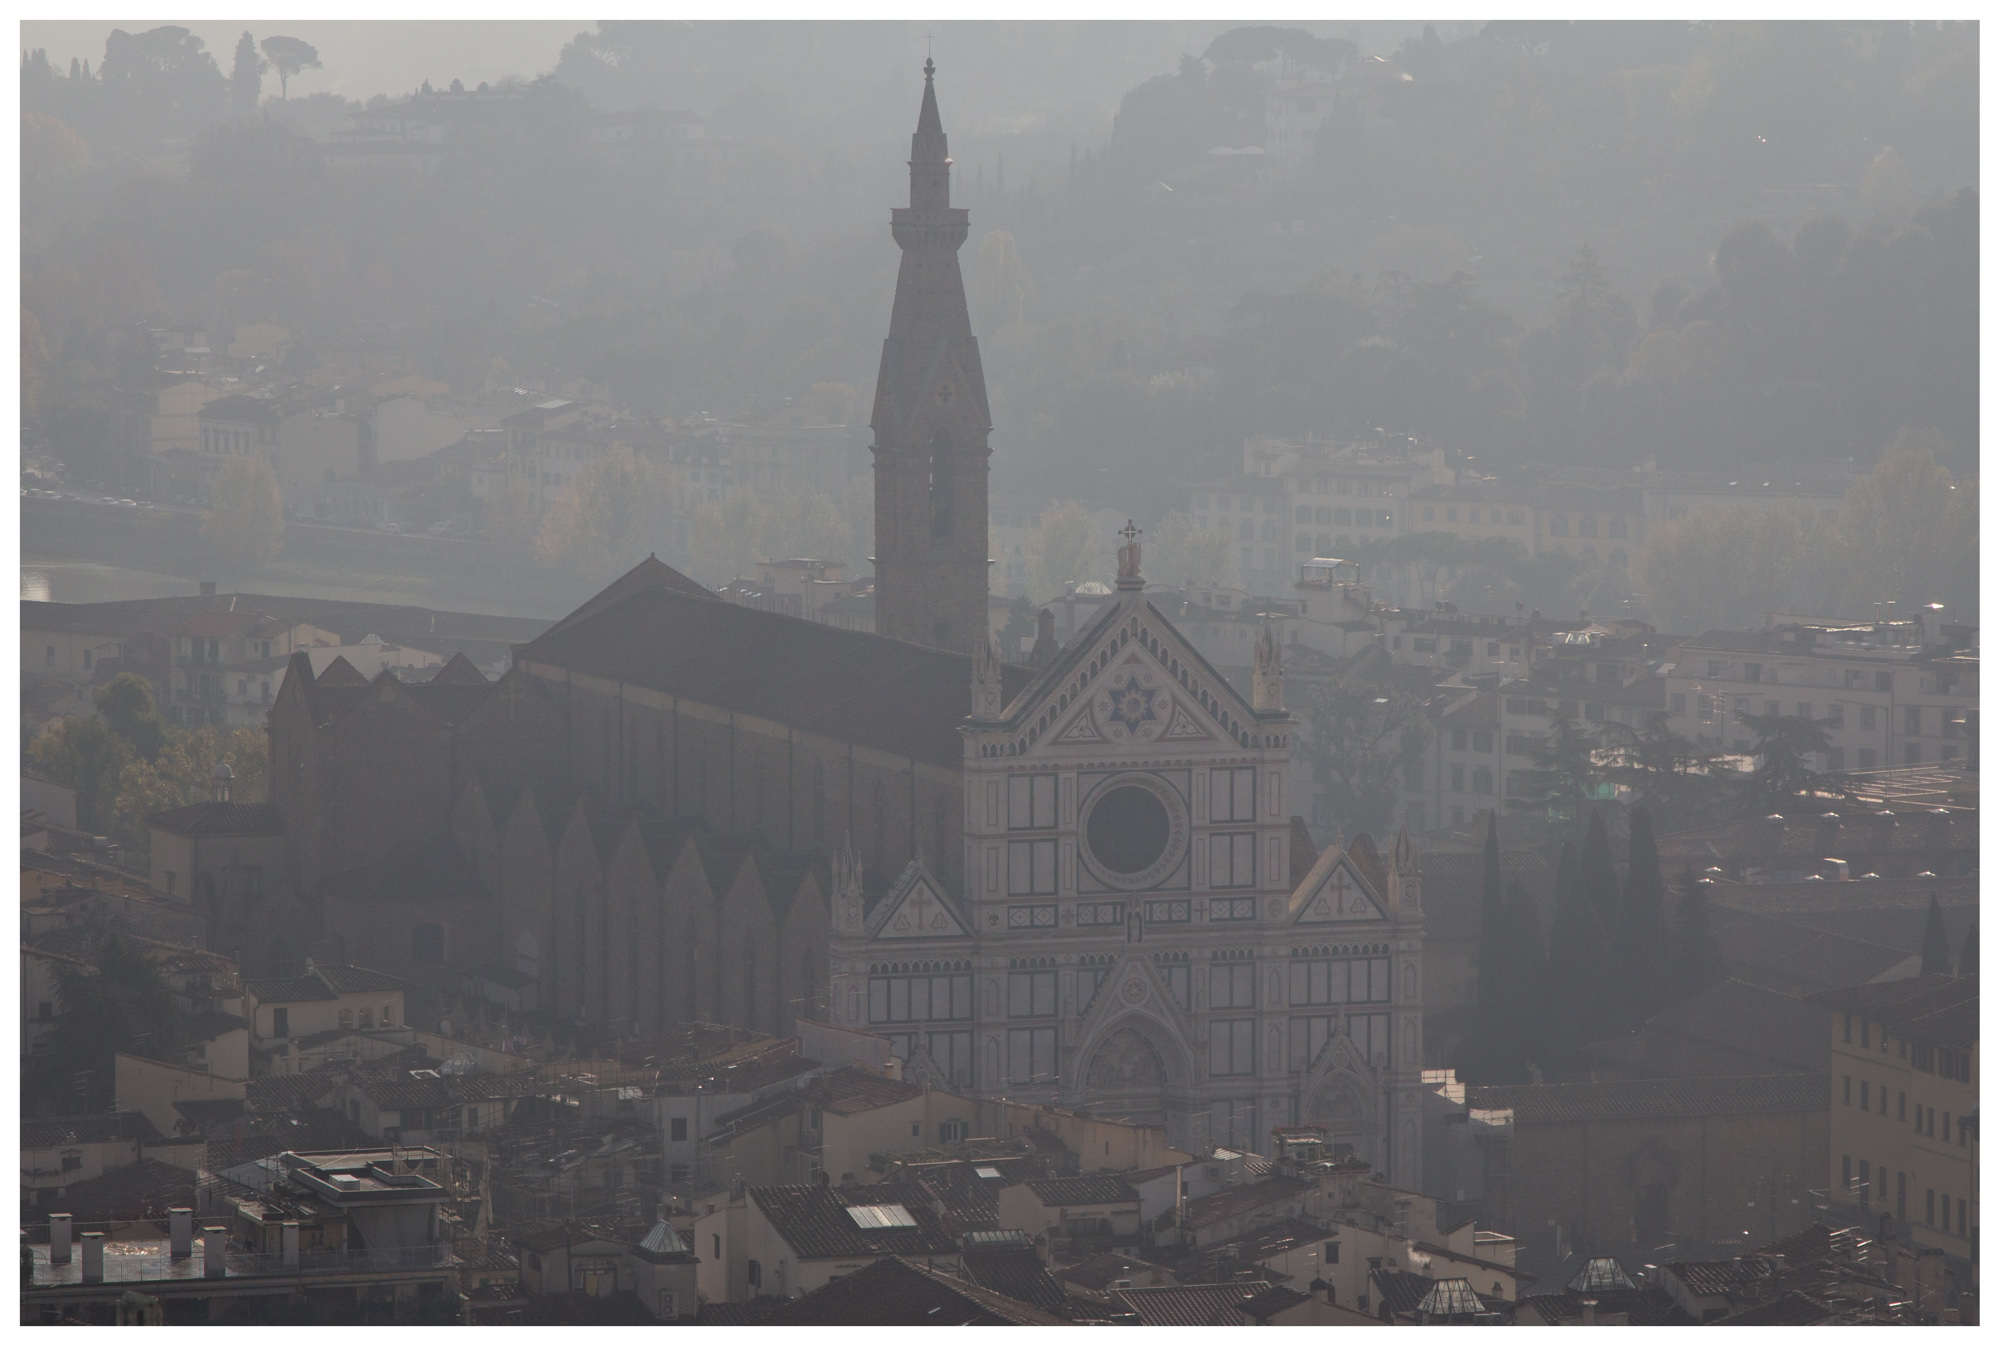 From Florence - part 4 - The Haze